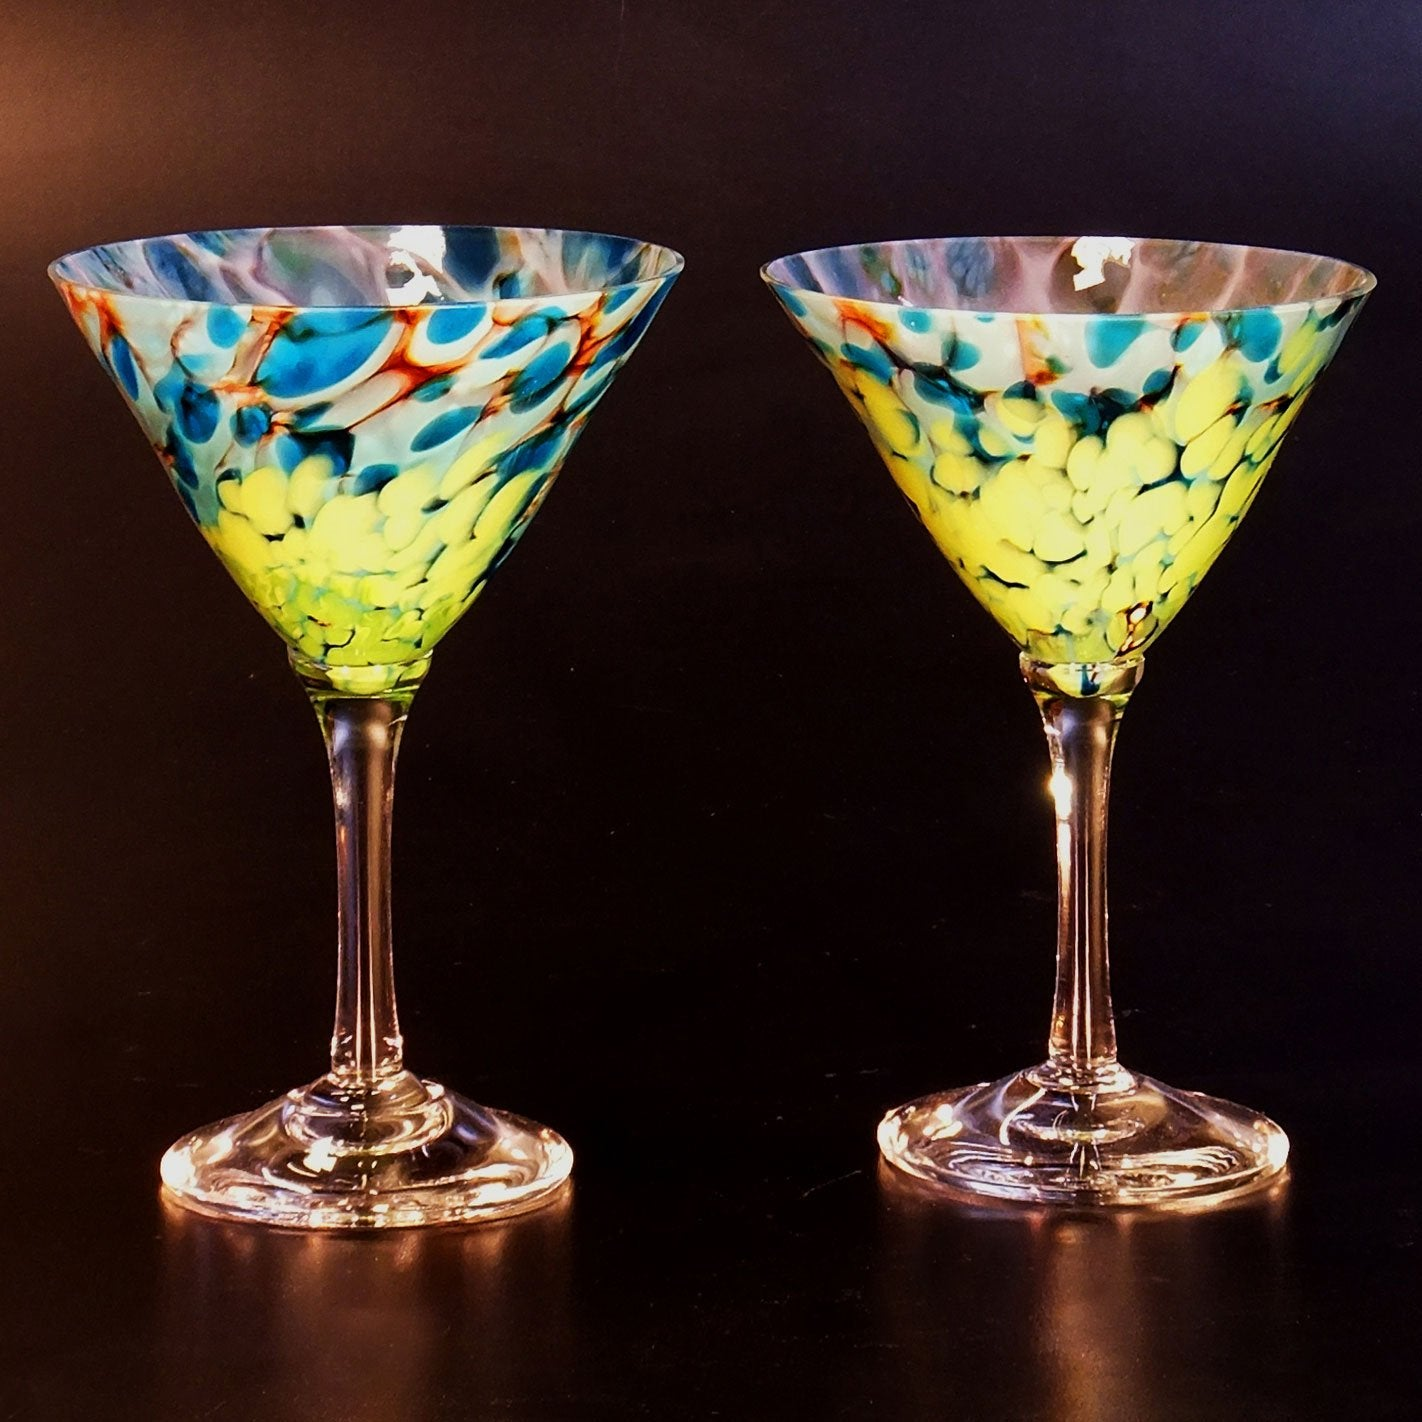 The Glass Forge Martini Glasses Shown In Et Crater Artistic Functional Artisan Handblown Art Glass Barware Drinkware Handmade In The Usa Handmade In The Usa Sweetheart Gallery Contemporary Craft Gallery Fine